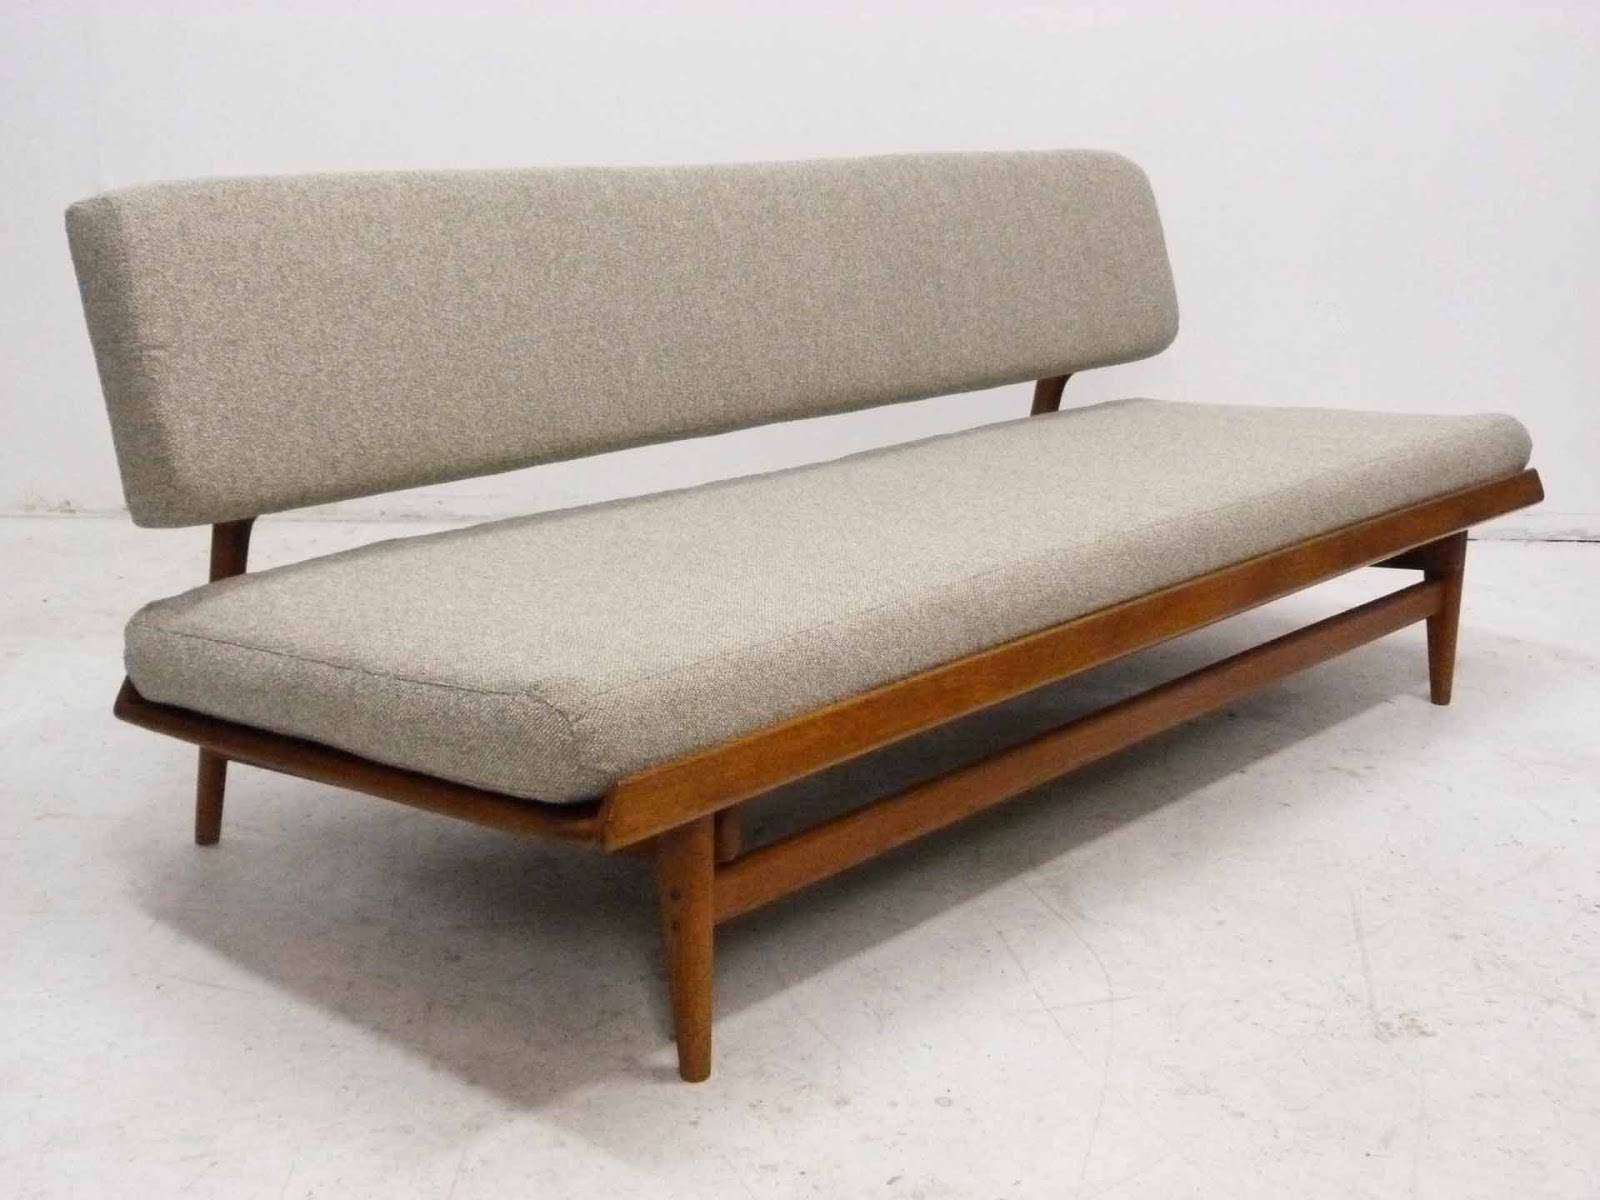 J O Carlsson Midcentury Sofa Daybed Angle View